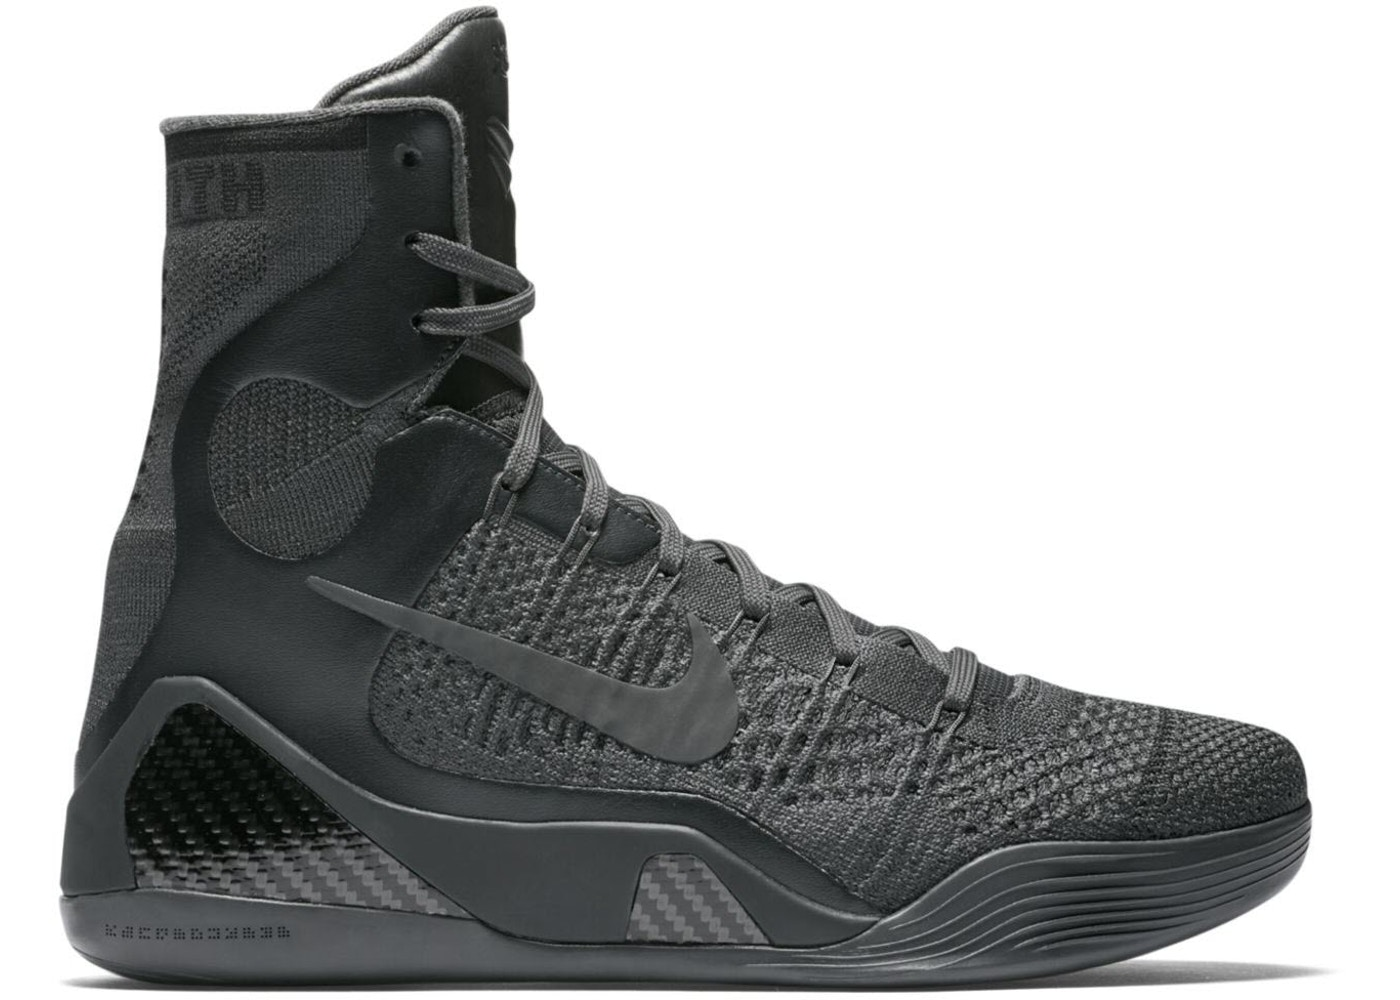 new style 72587 d7aef Buy Nike Kobe Fade To Black Shoes & Deadstock Sneakers